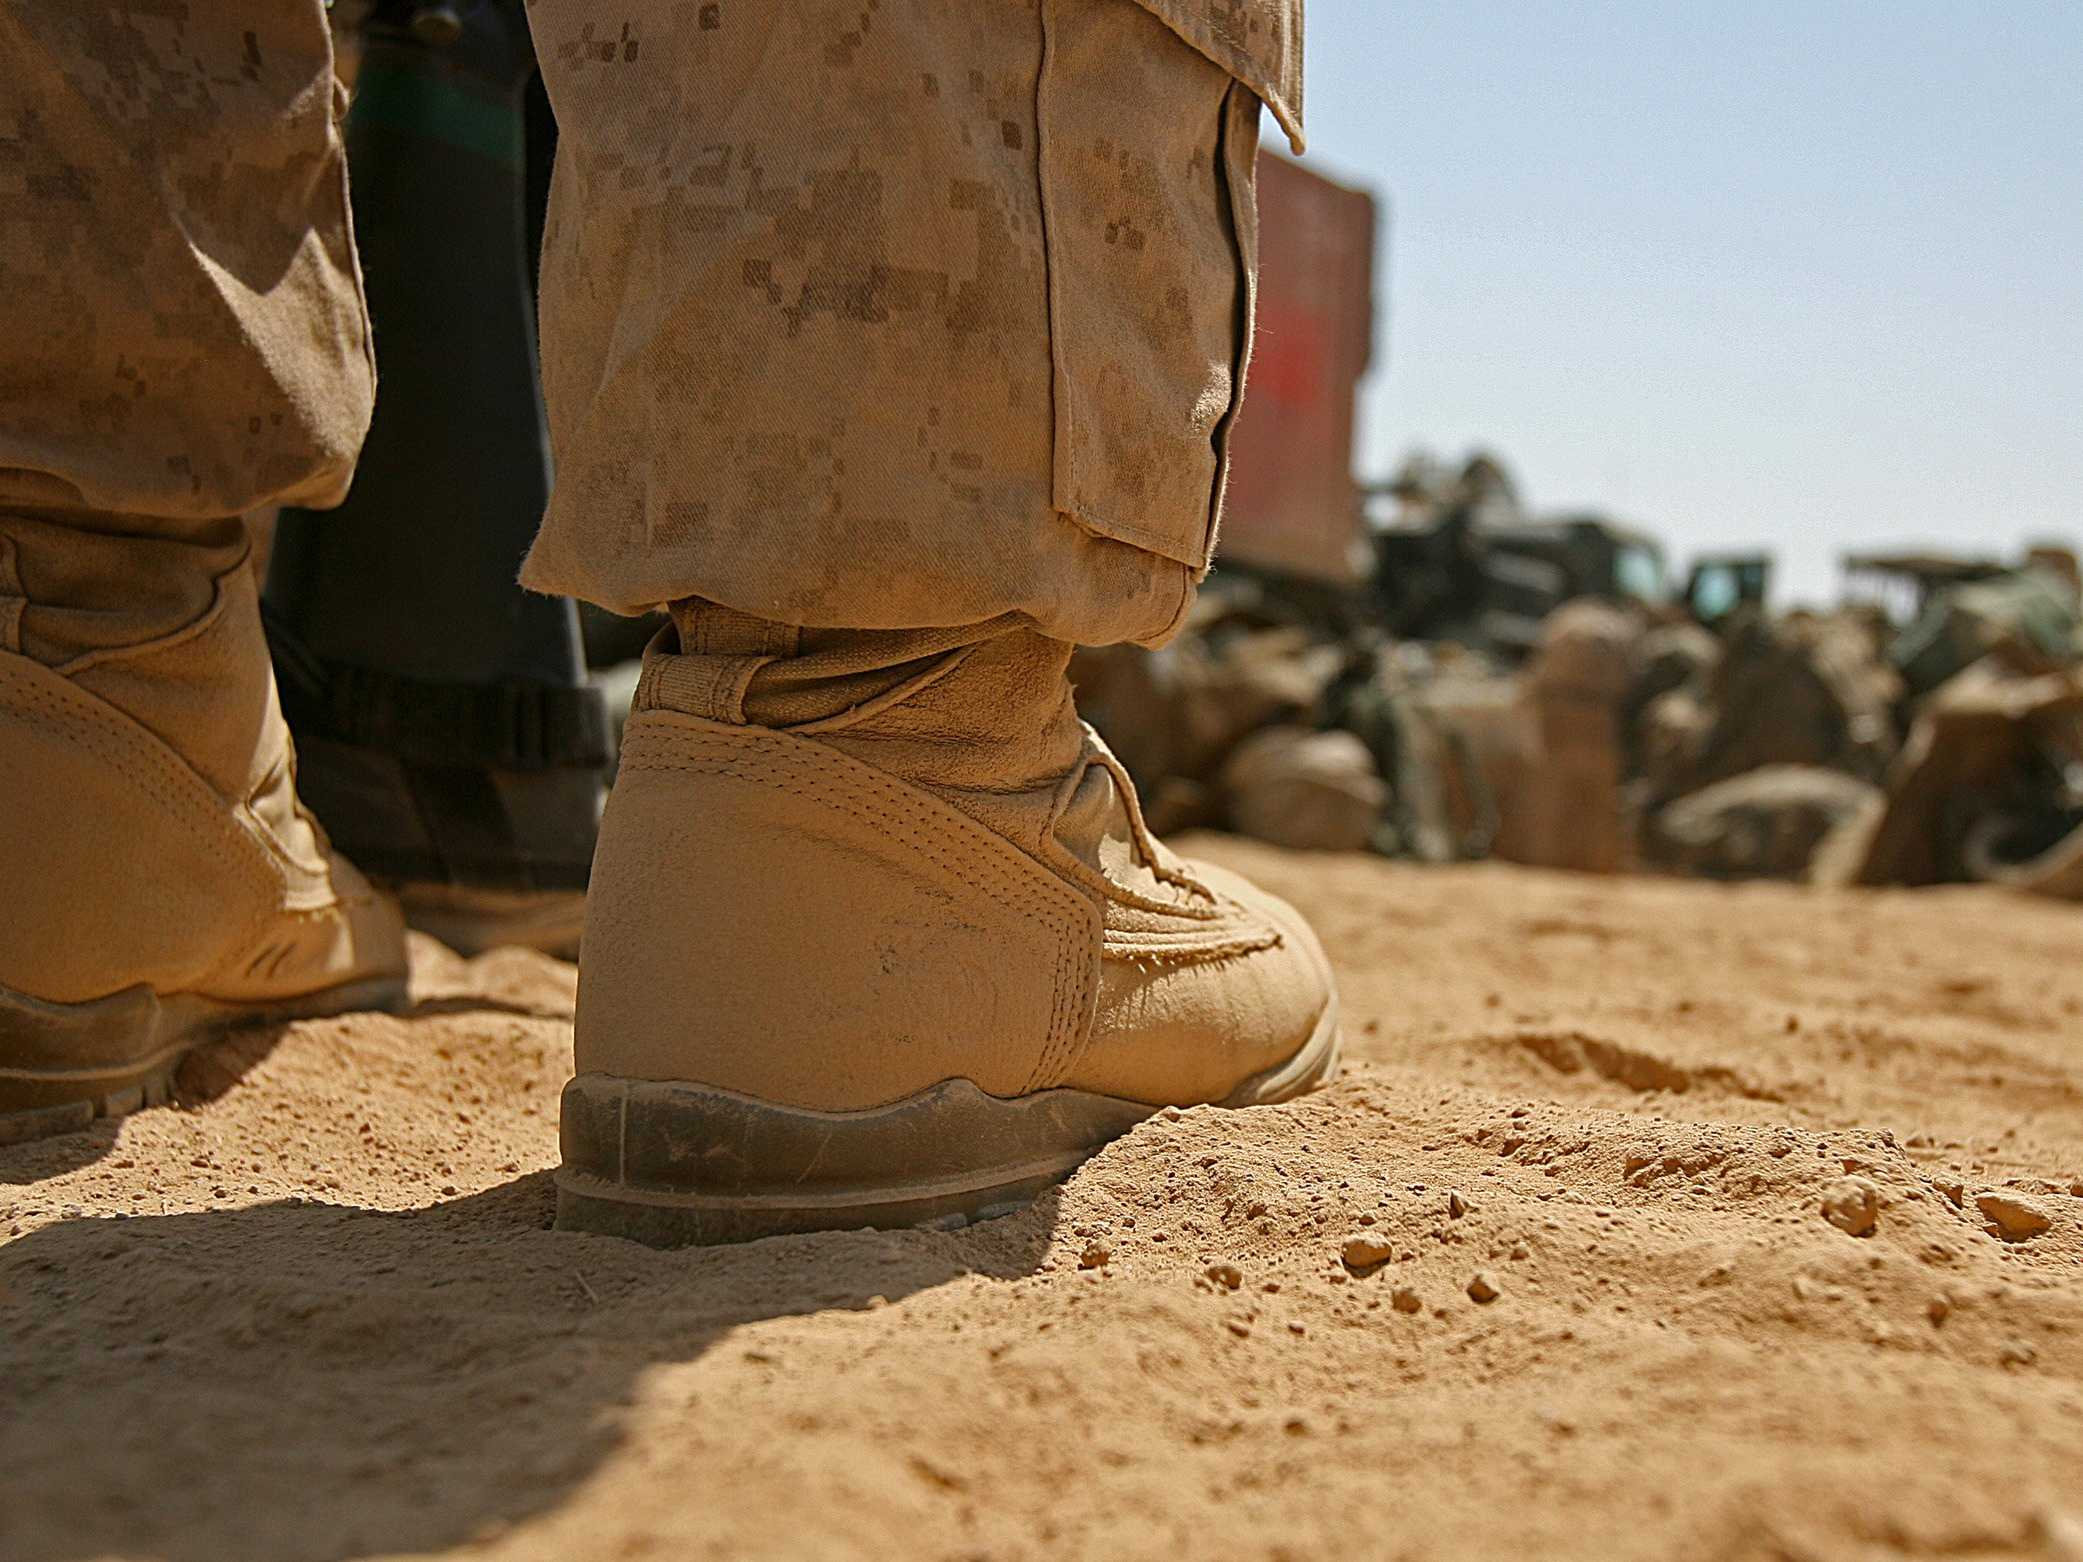 It's official: US boots on ground in Iraq, Syria